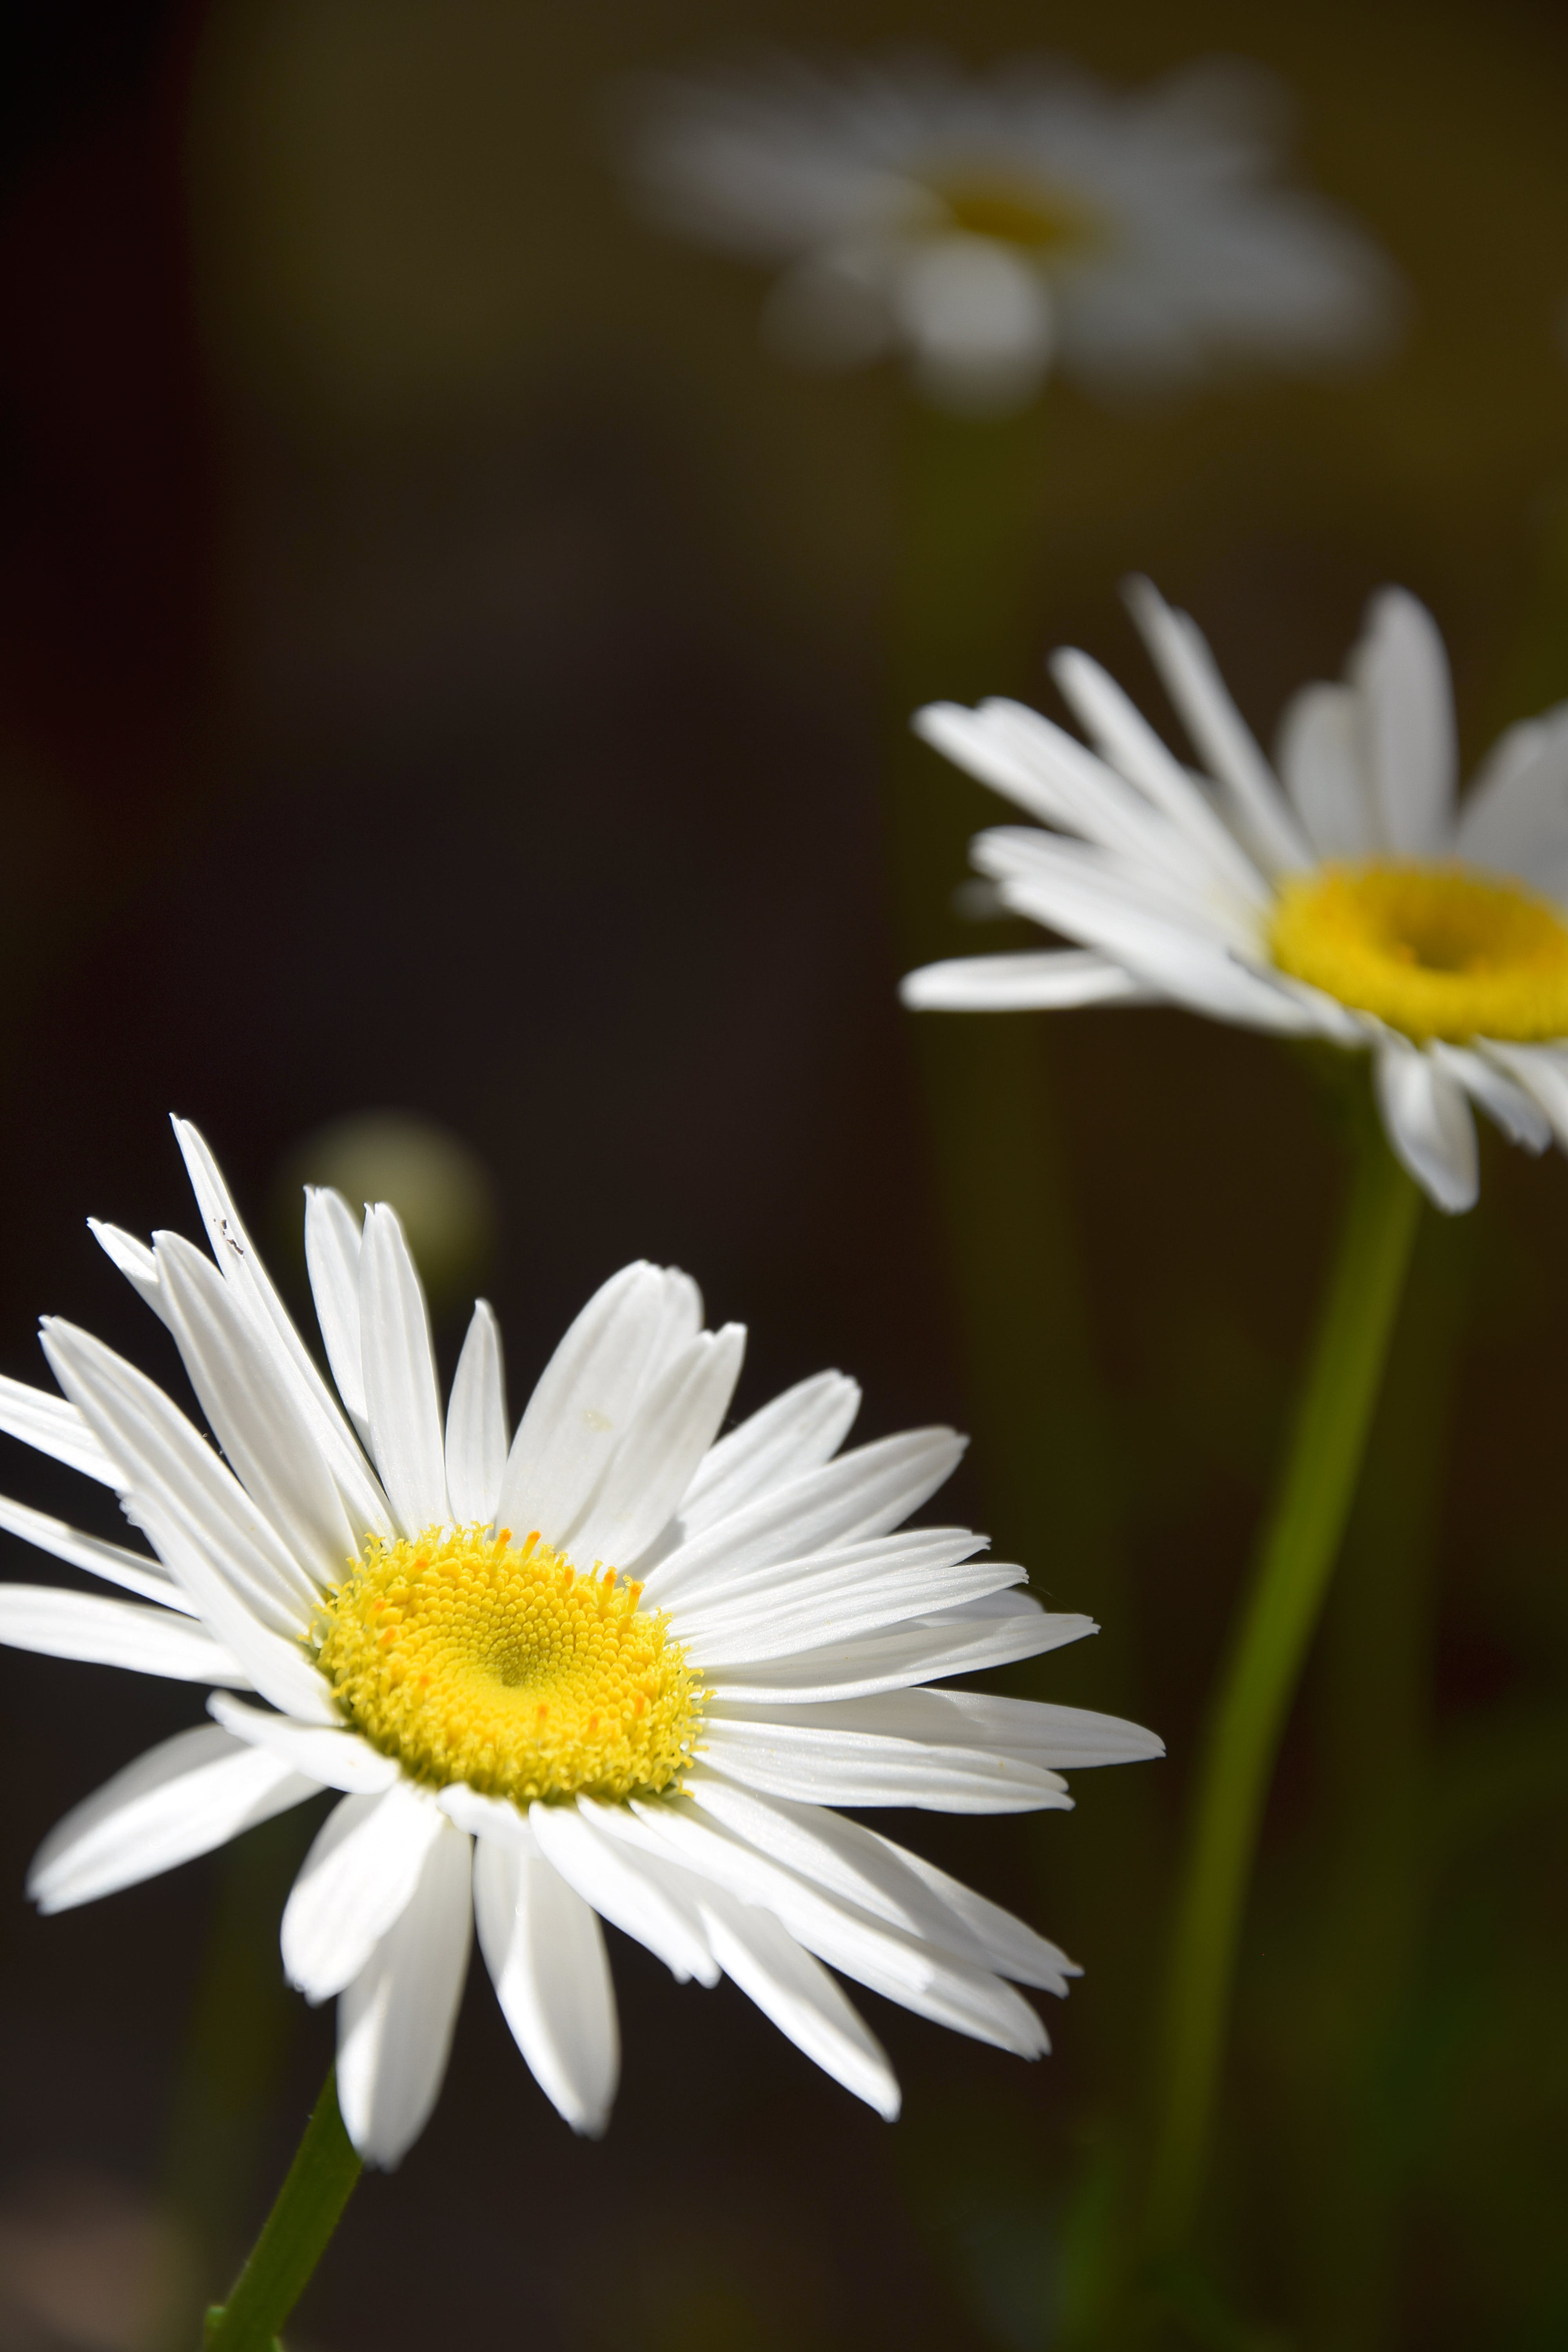 Selective Focus Photo of White Daisies in Bloom